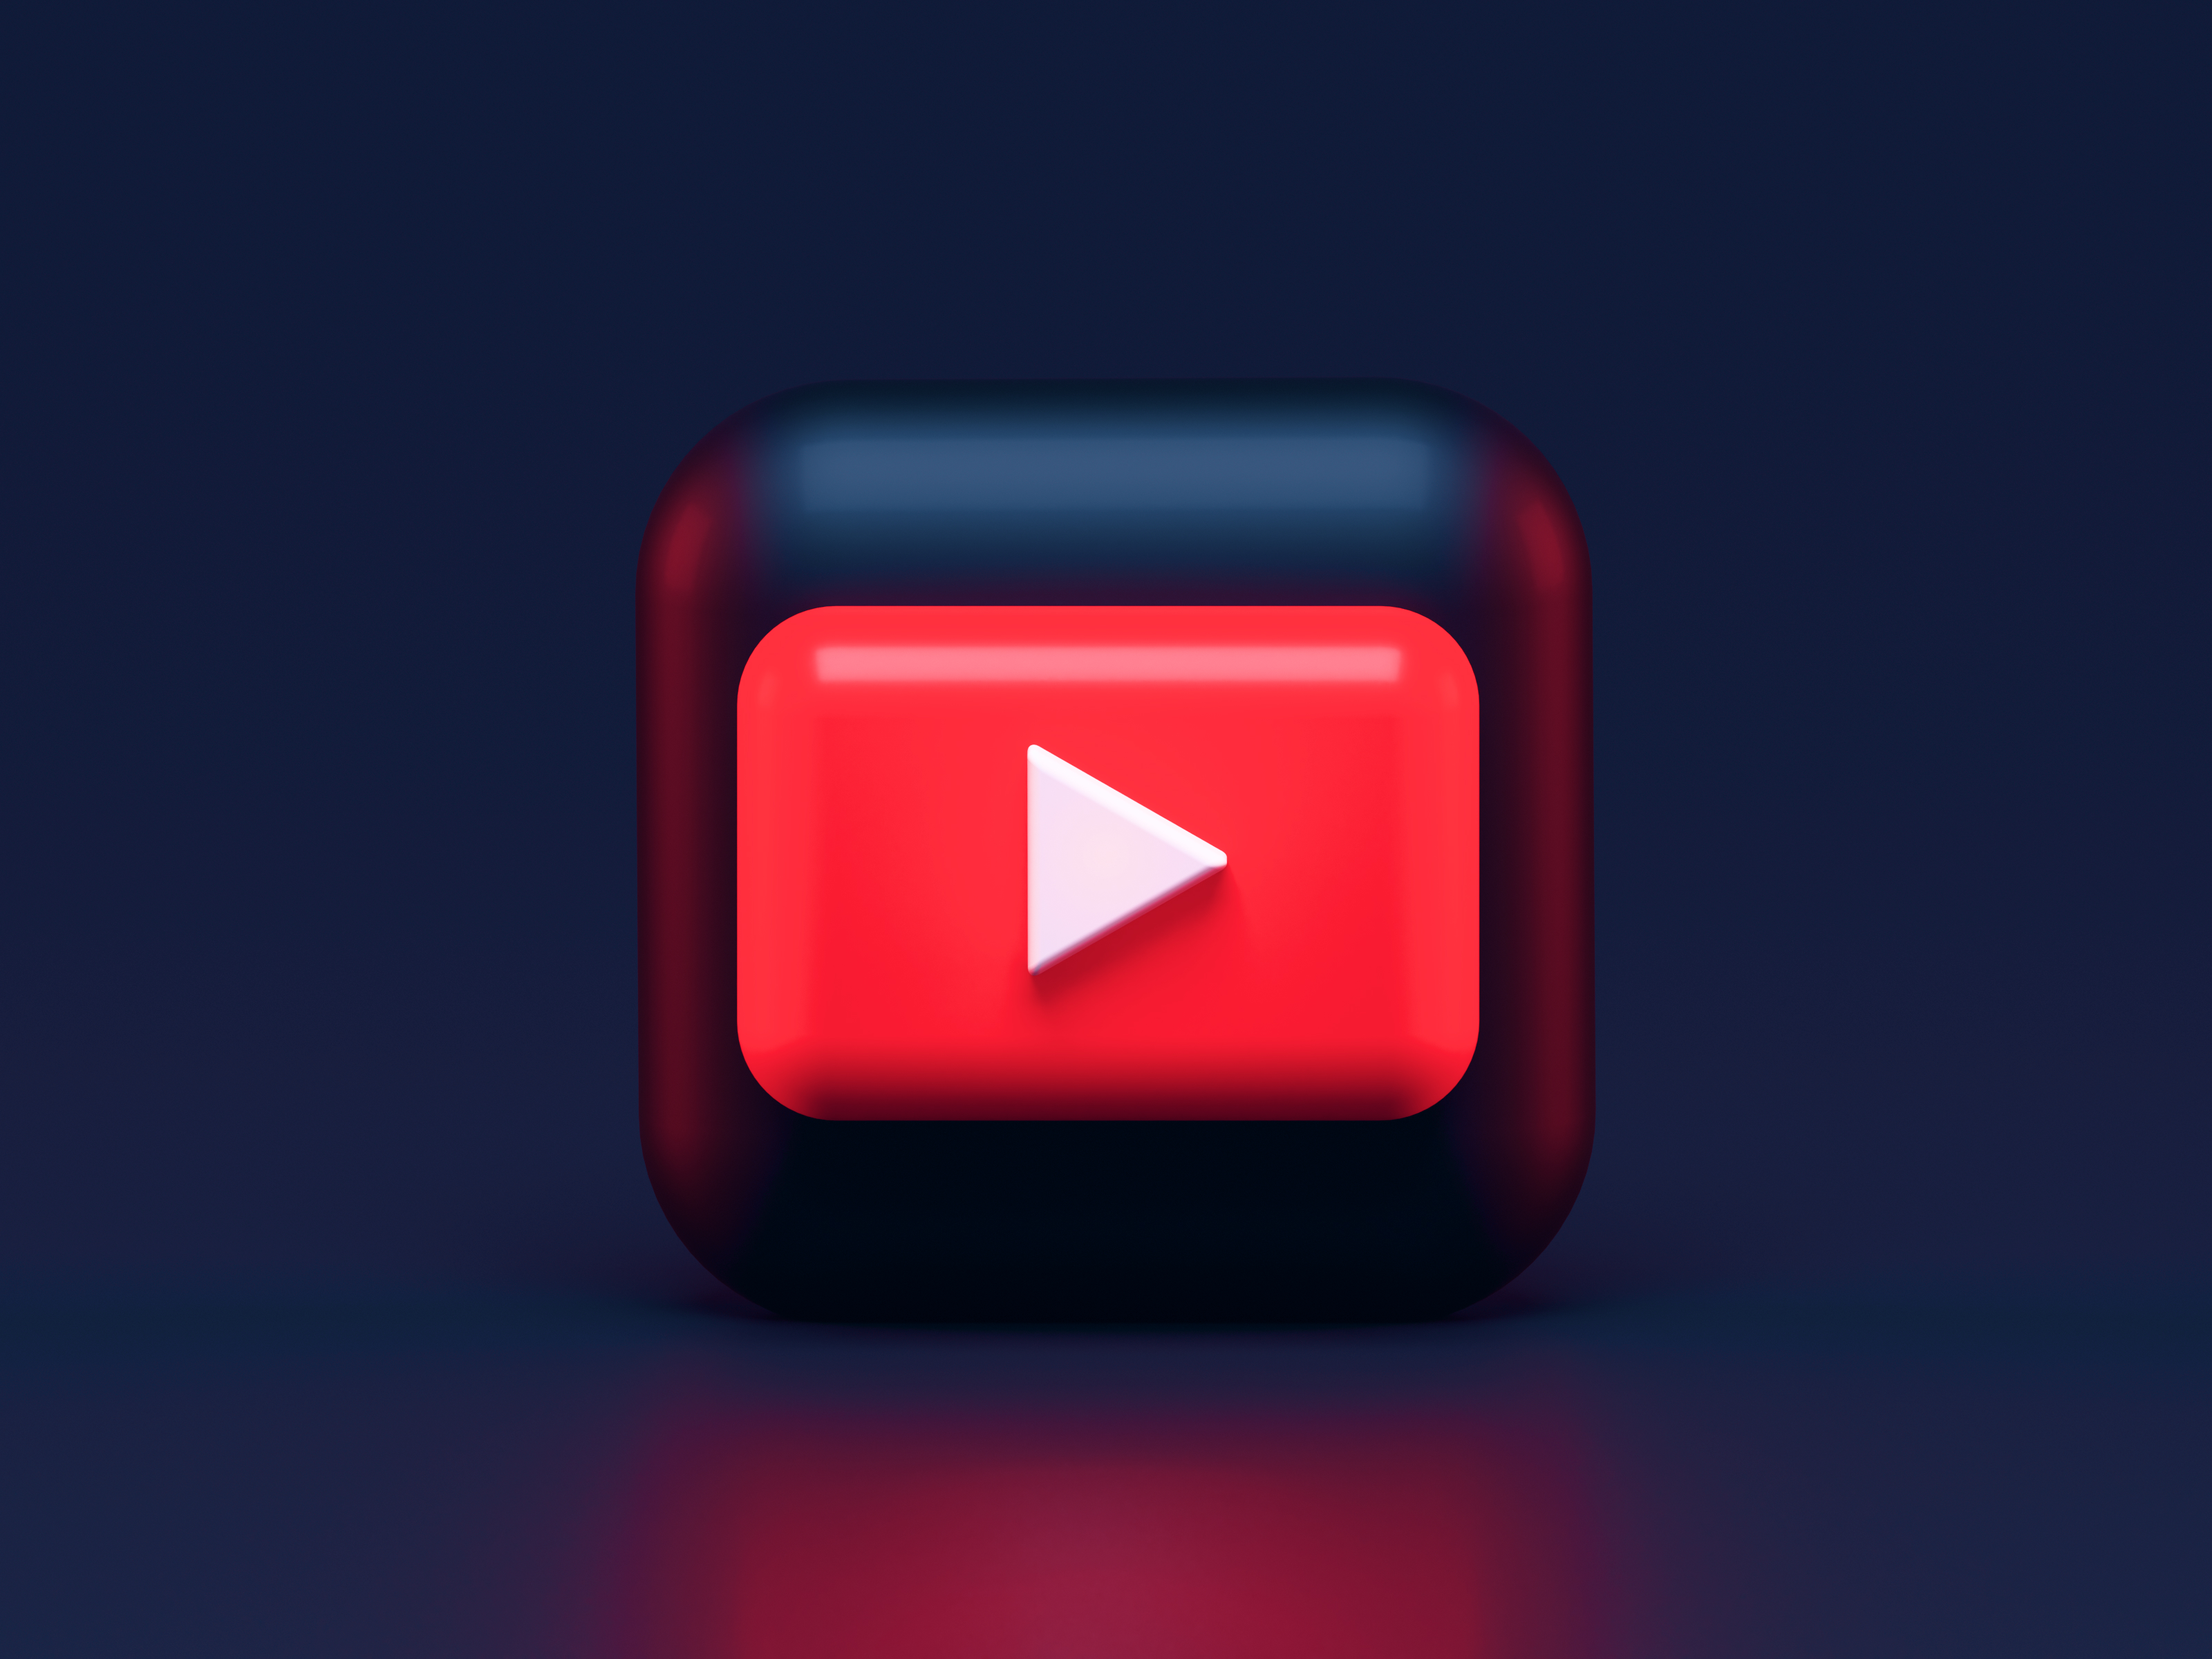 Fetching Youtube Channel Information and Videos using Youtube API.